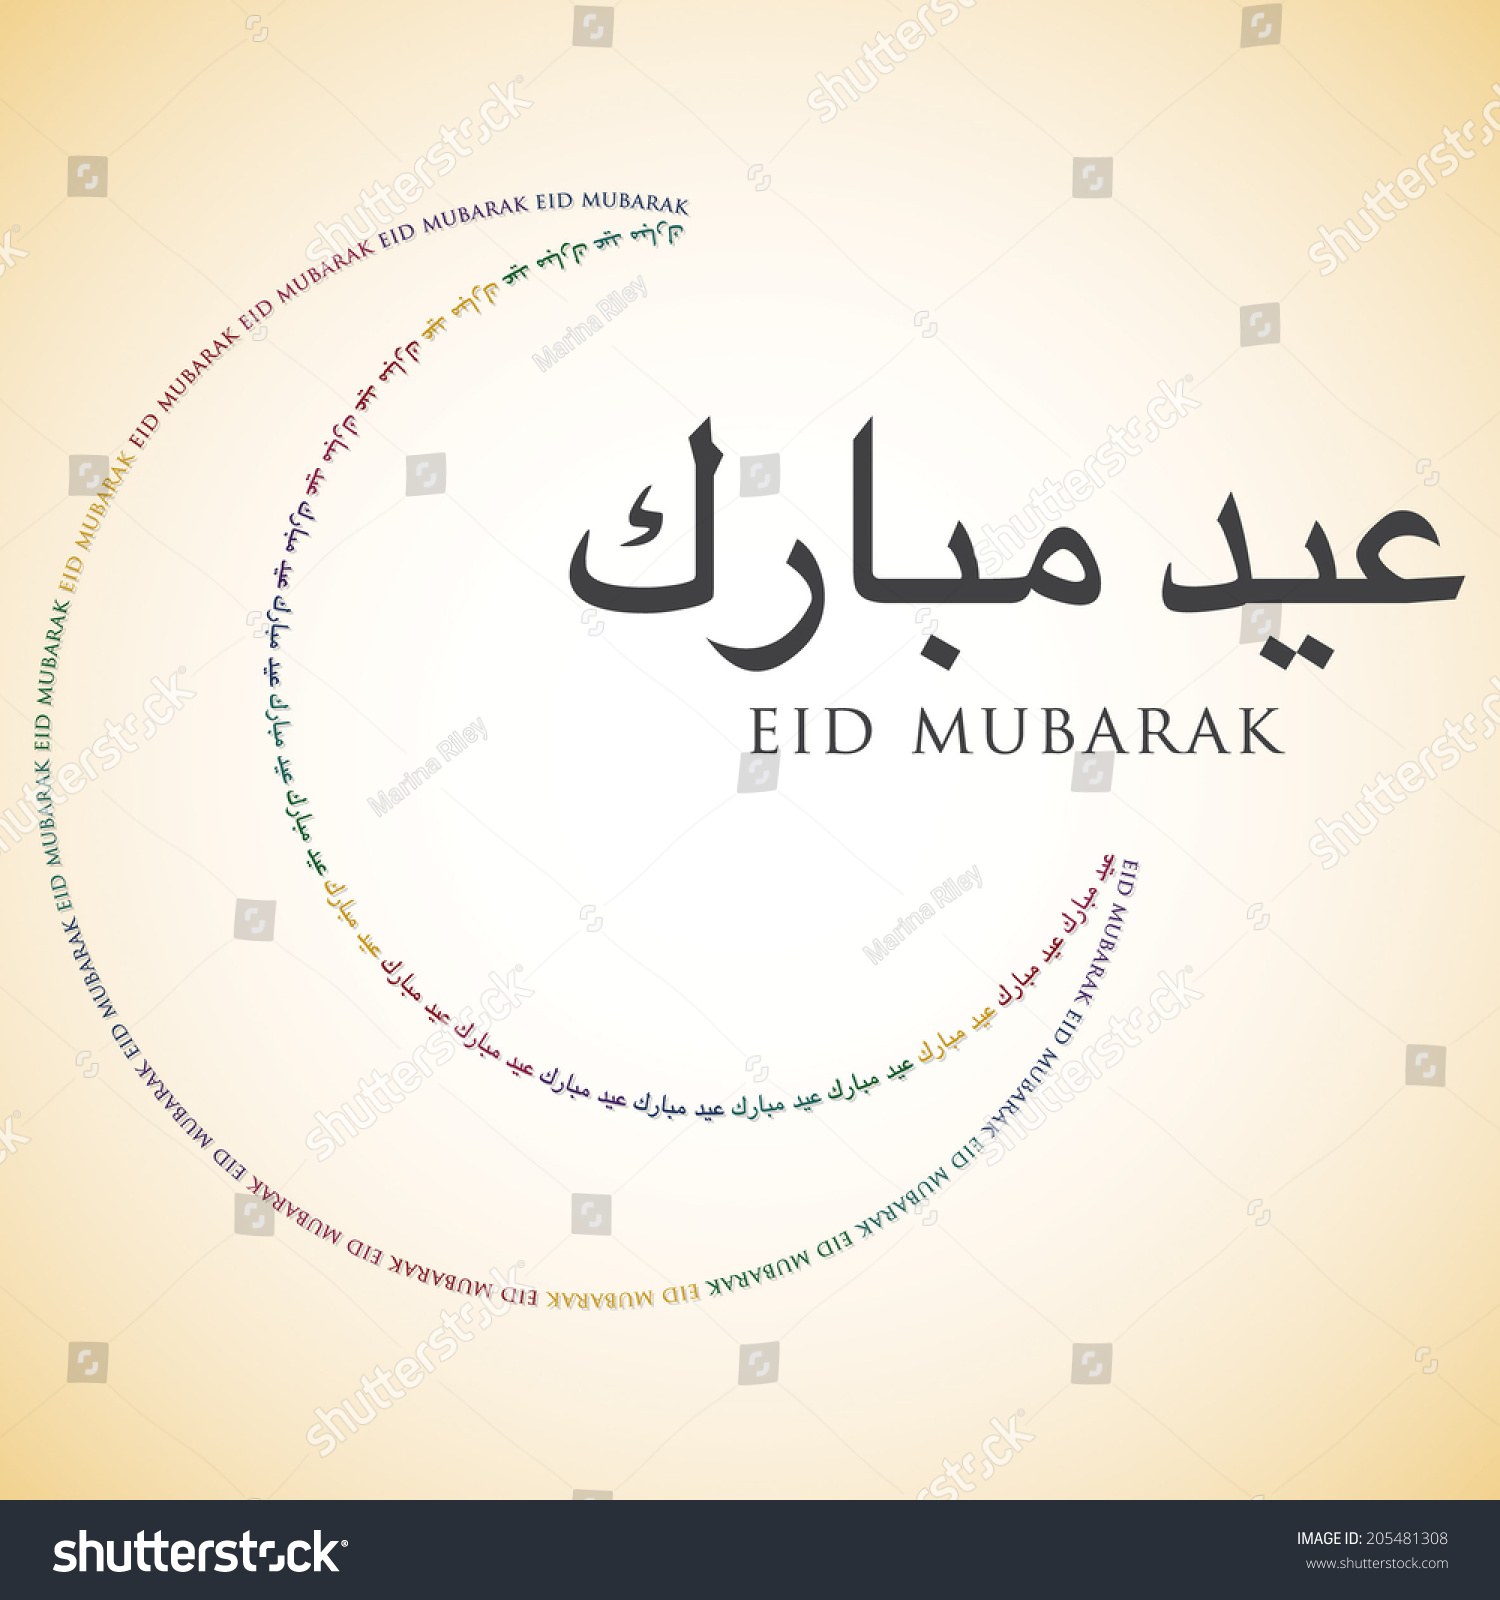 Moon made words eid card vector stock vector 205481308 shutterstock moon made of words eid card in vector format kristyandbryce Image collections